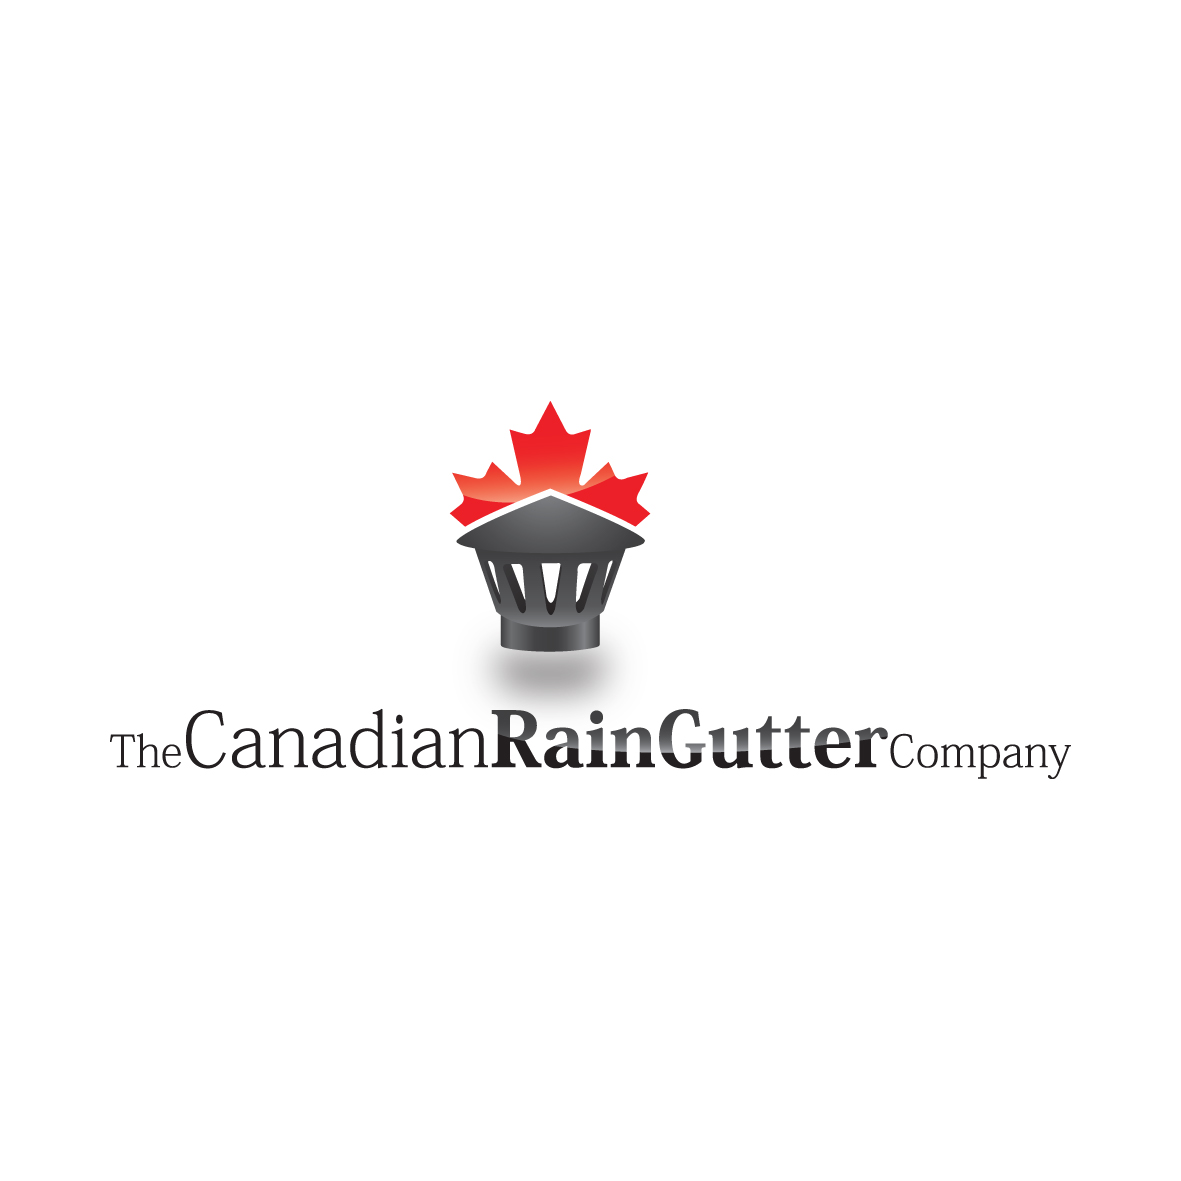 Logo Design by ex - Entry No. 2 in the Logo Design Contest The Canadian Rain Gutter Company.